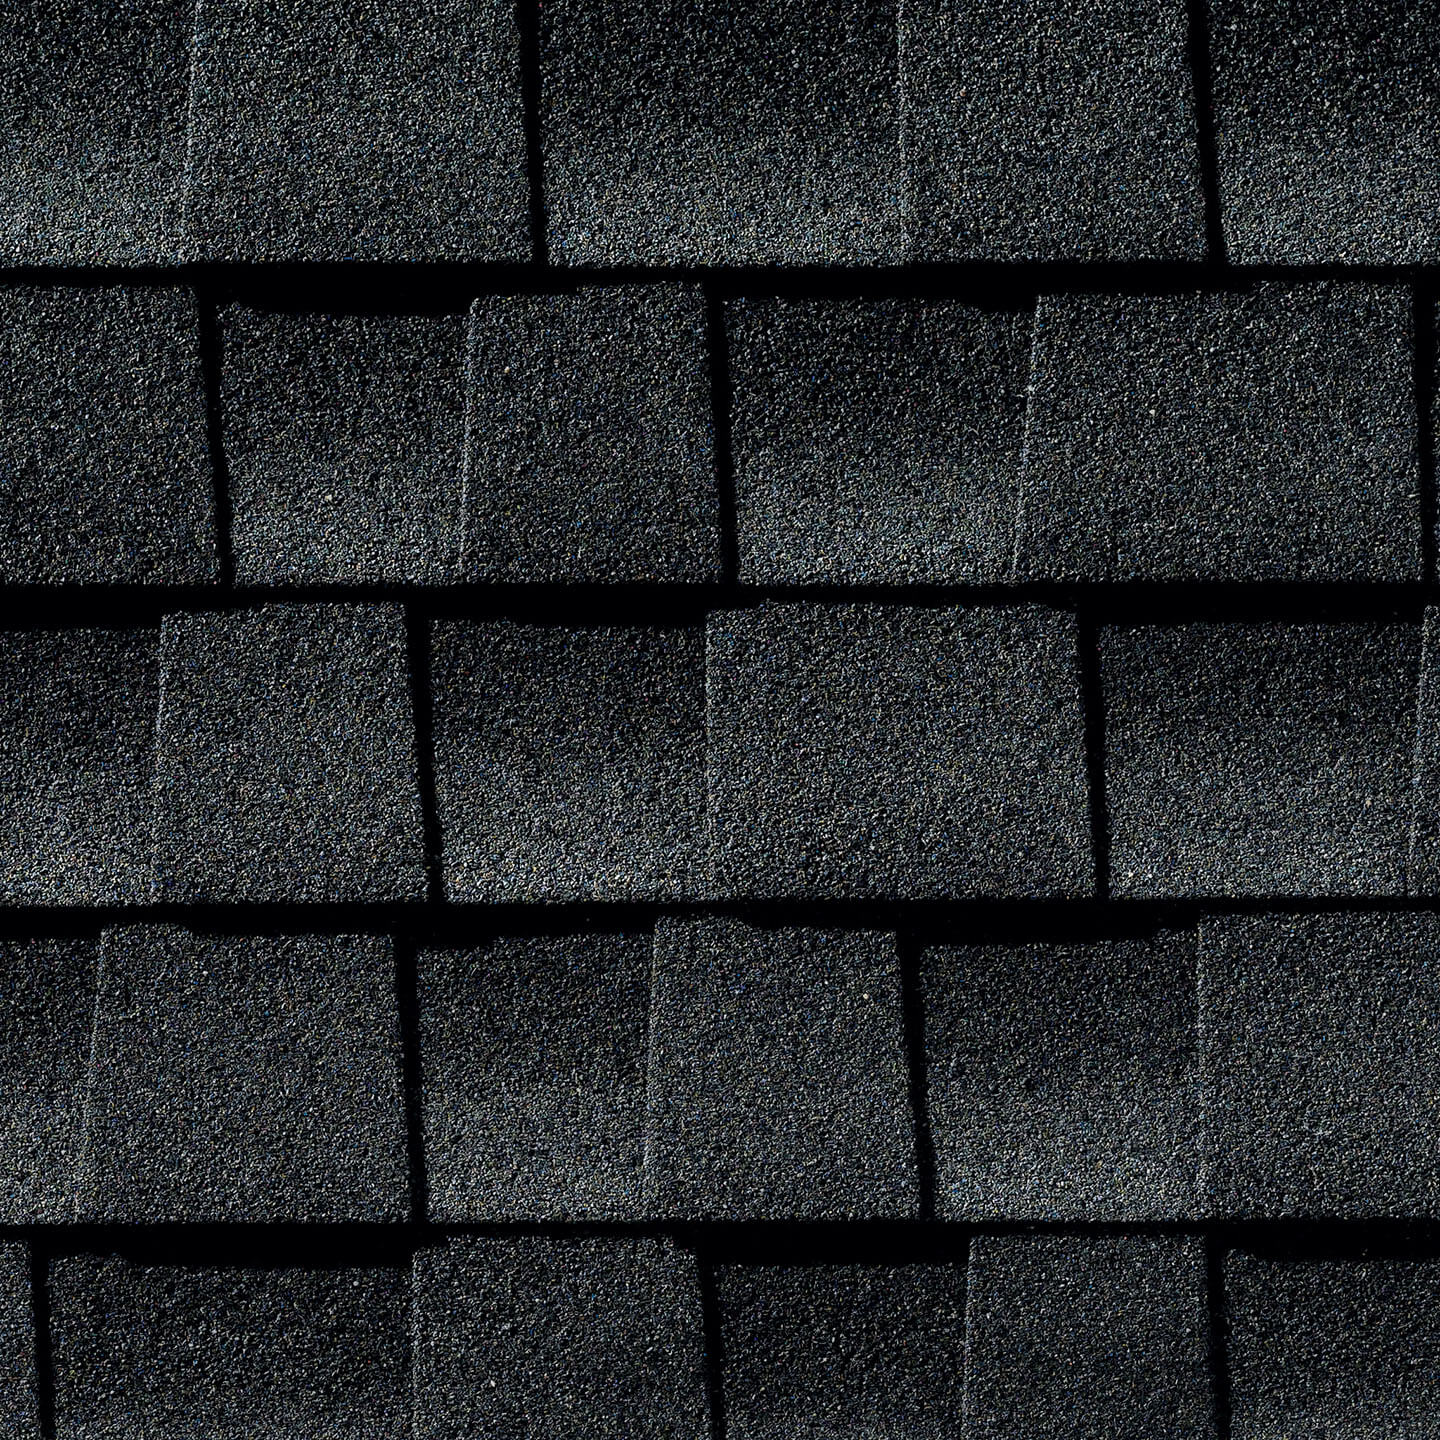 Timberline Charcoal shingle sample